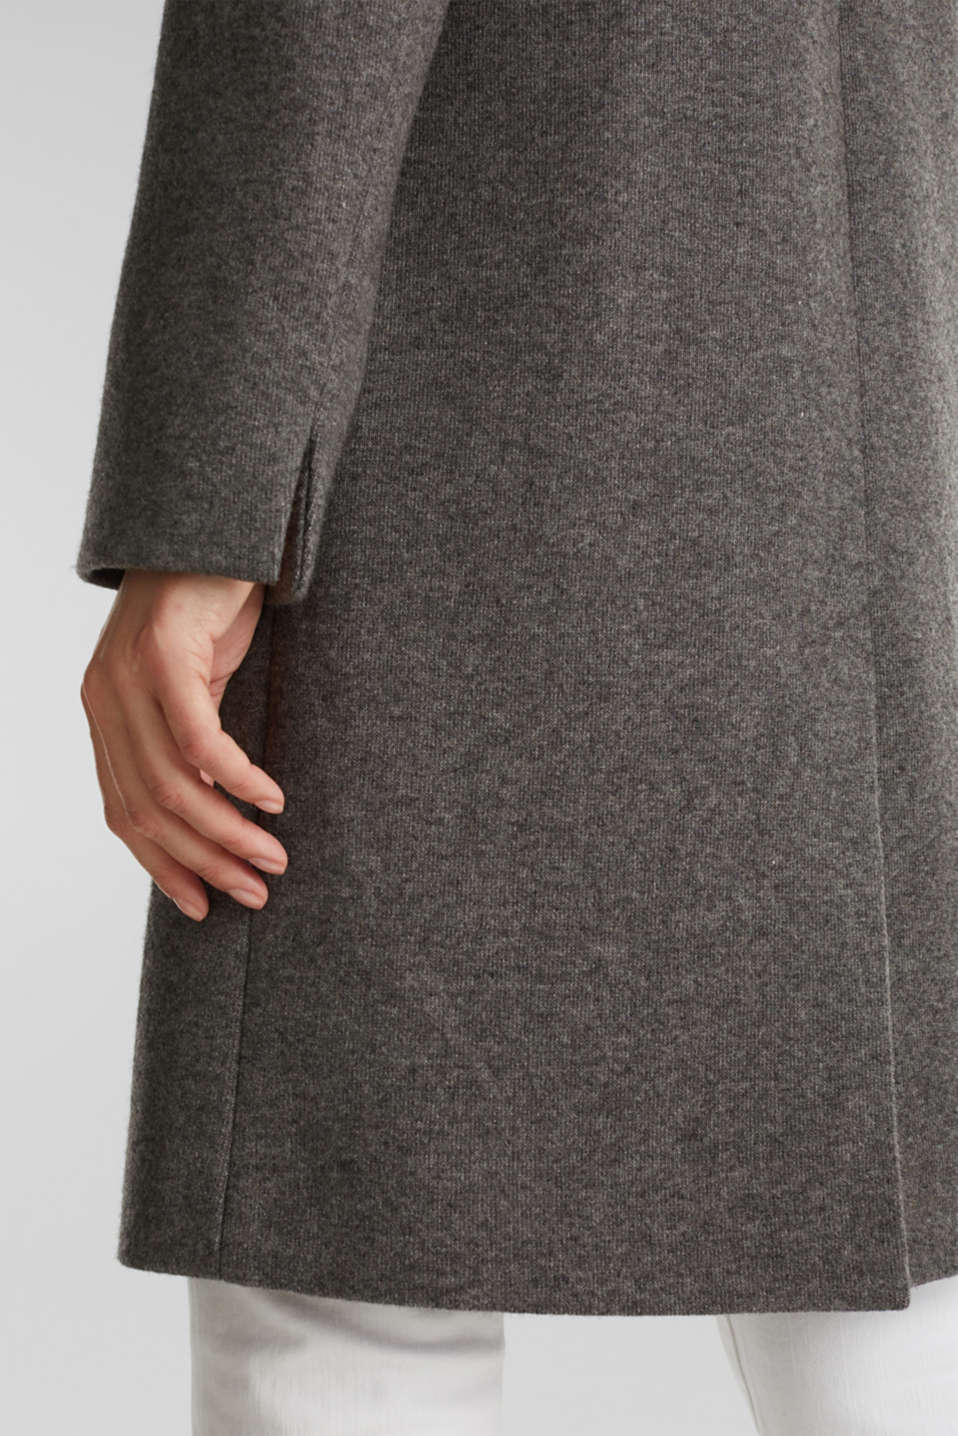 Made of blended wool: Coat in a knit look, DARK GREY 5, detail image number 5